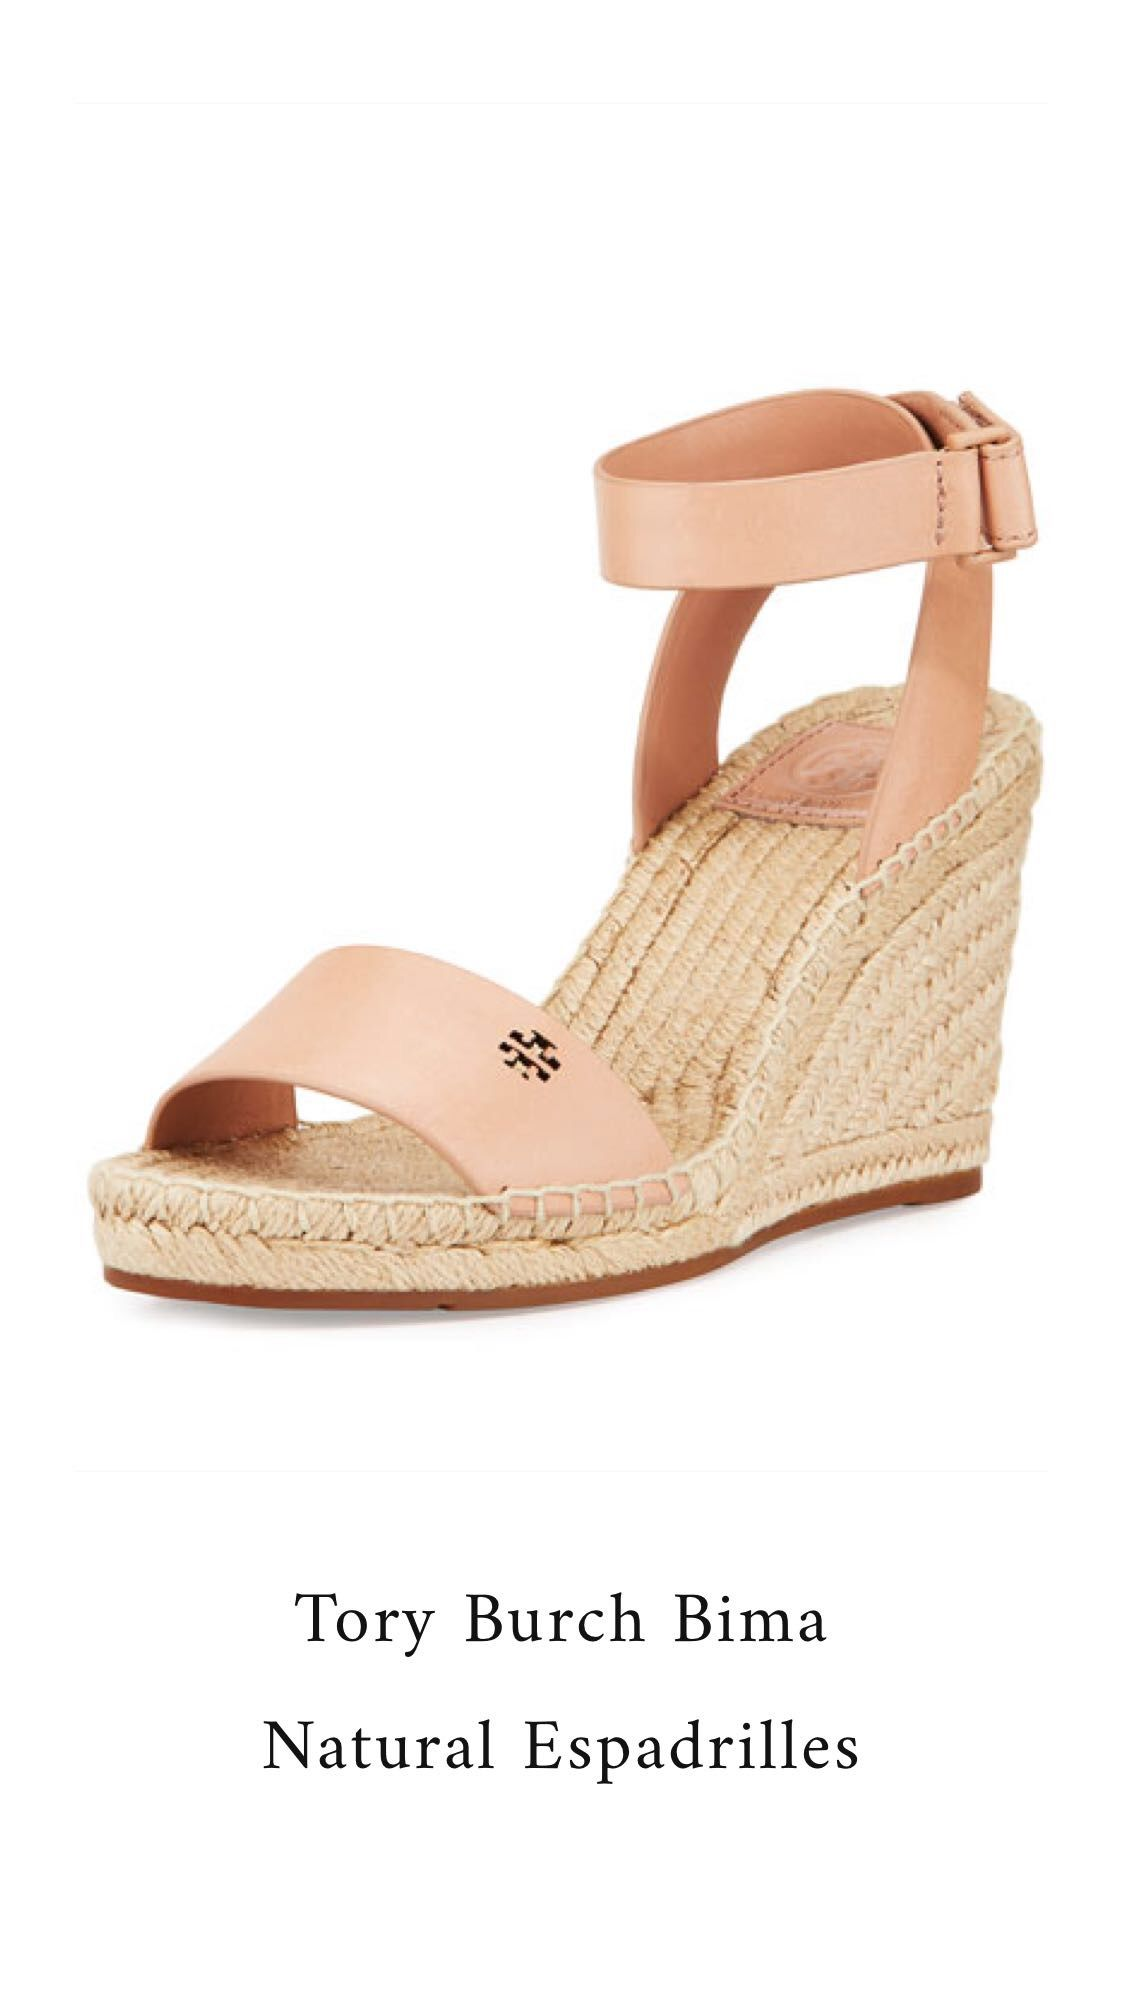 5bf334d6917f Tory Burch Bima Natural Espadrilles  KennethCole  Mules  Shoes  Summer   womens  Heels  fashion  espadrilles  Ipanema  Sandals  Flats  flipflops   wedges ...